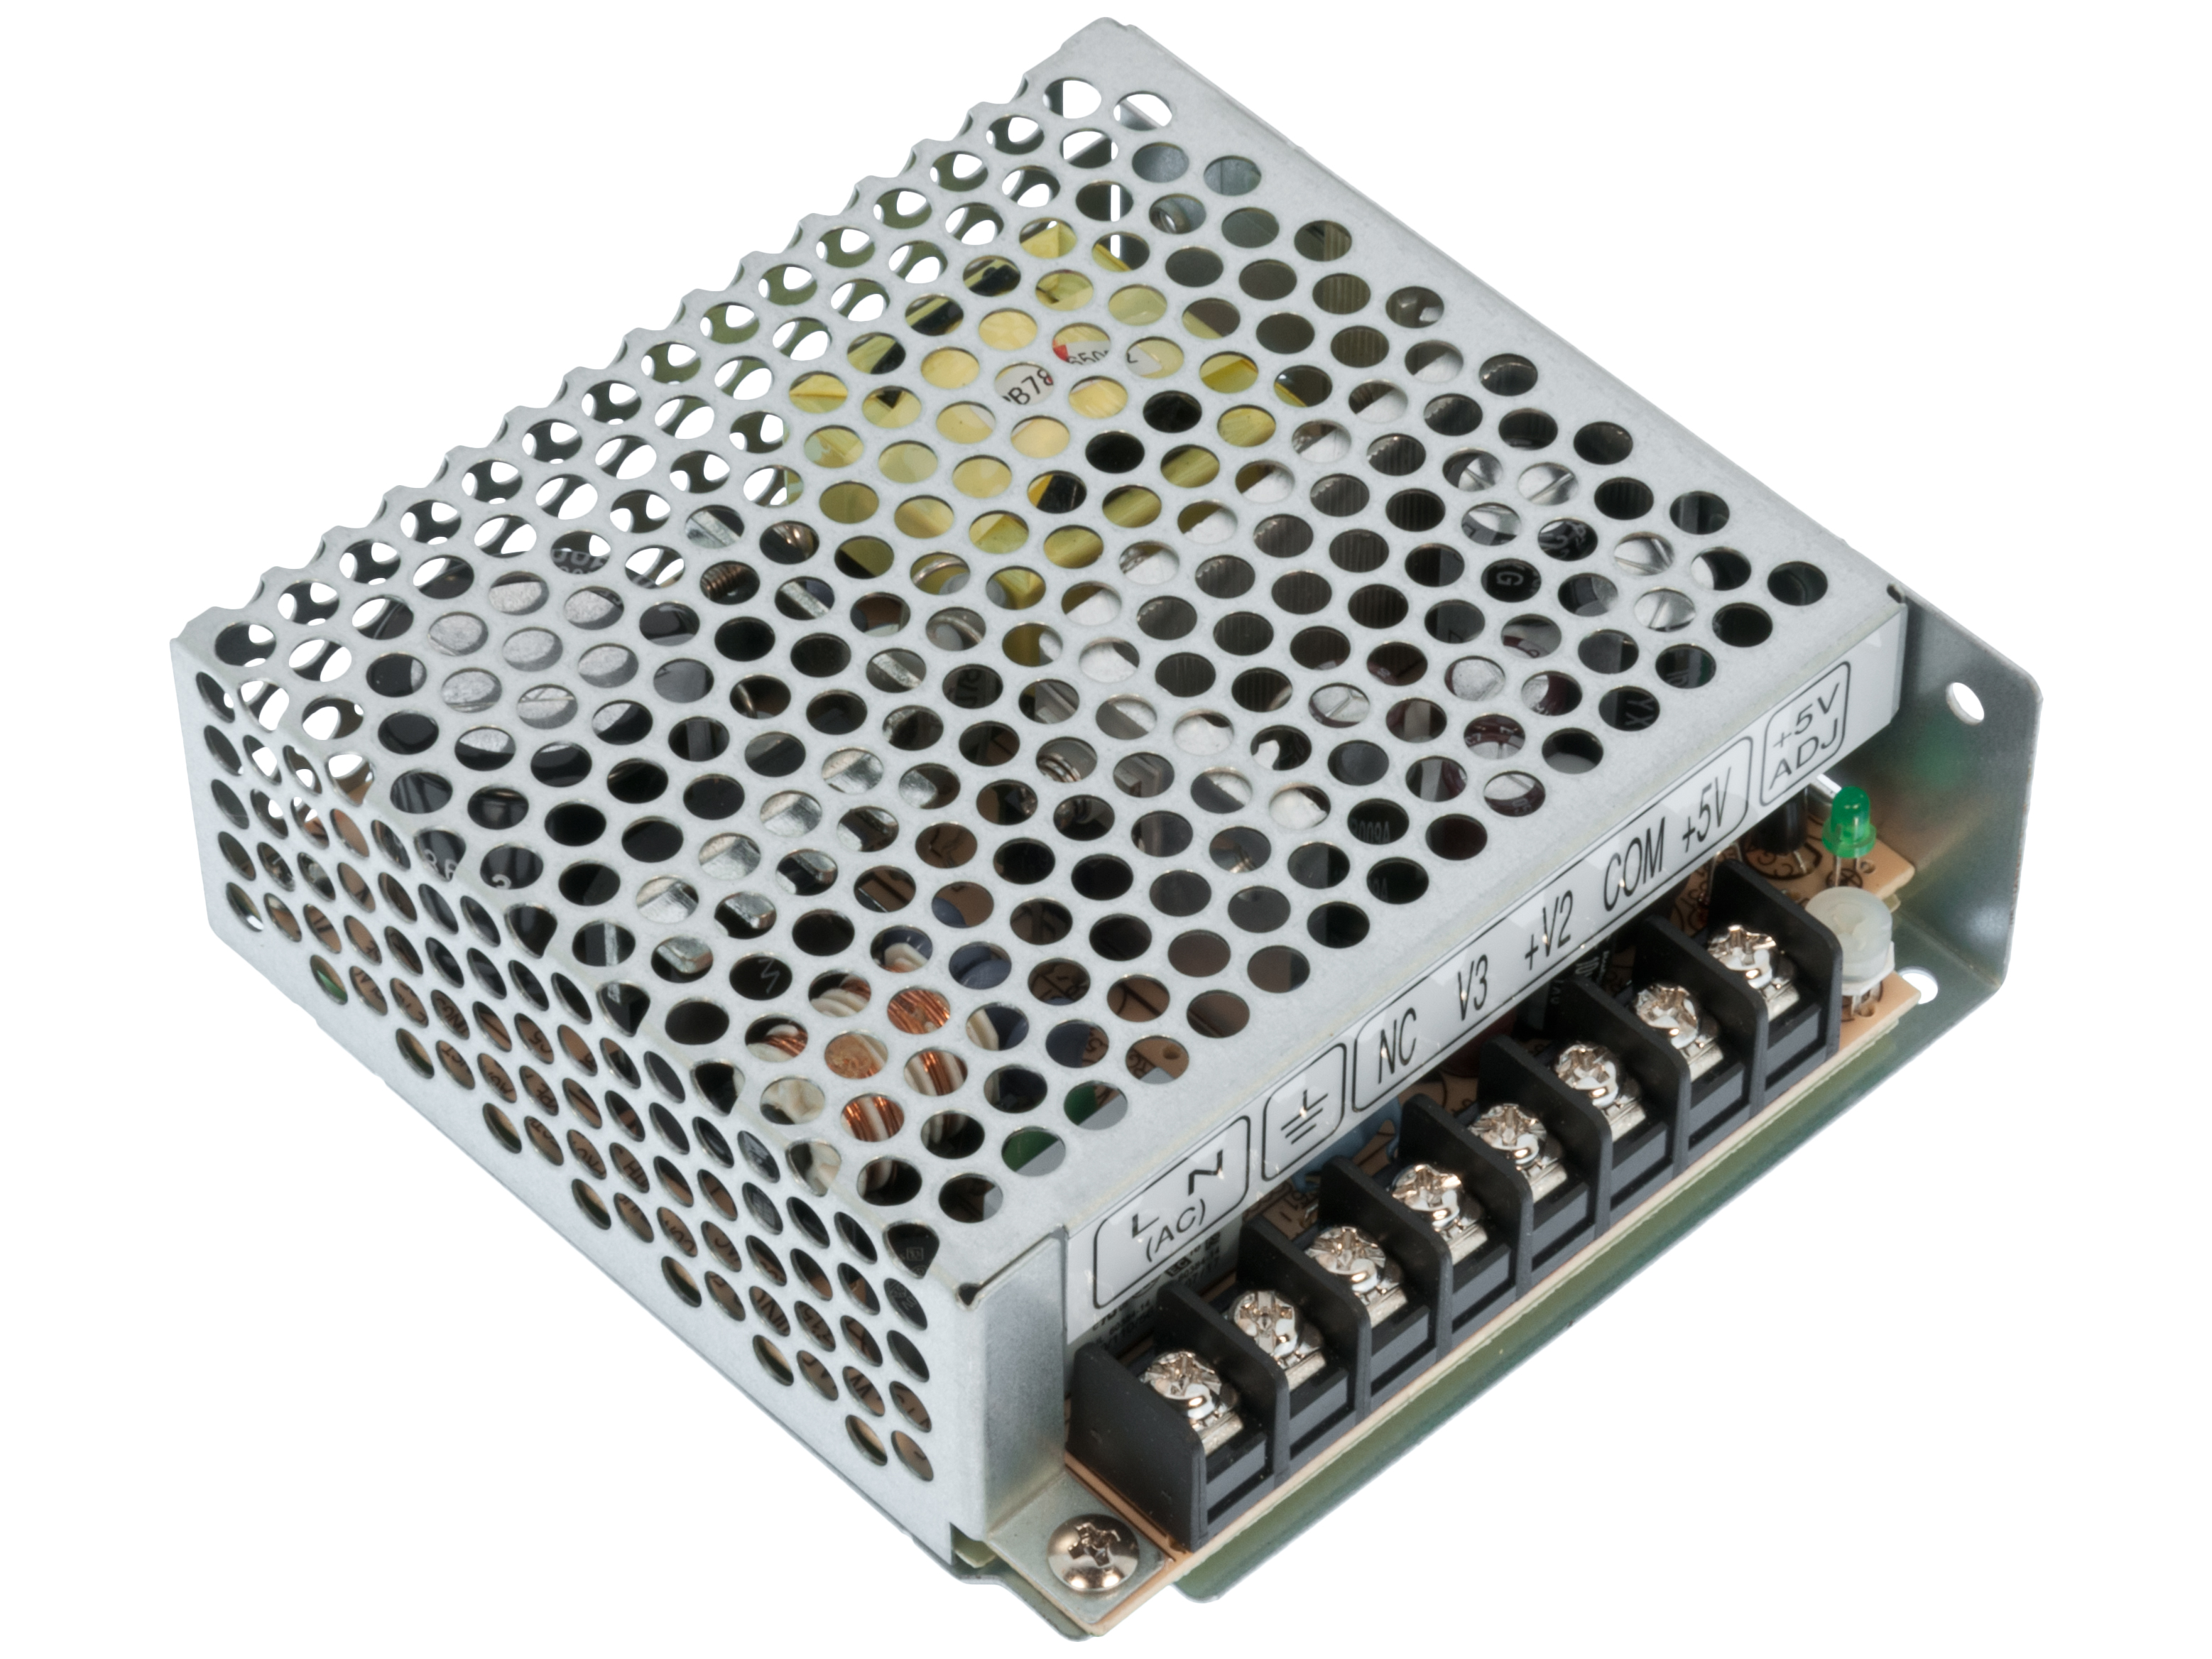 Switched power supply ±12V/5V 50W Mean Well RT-50B